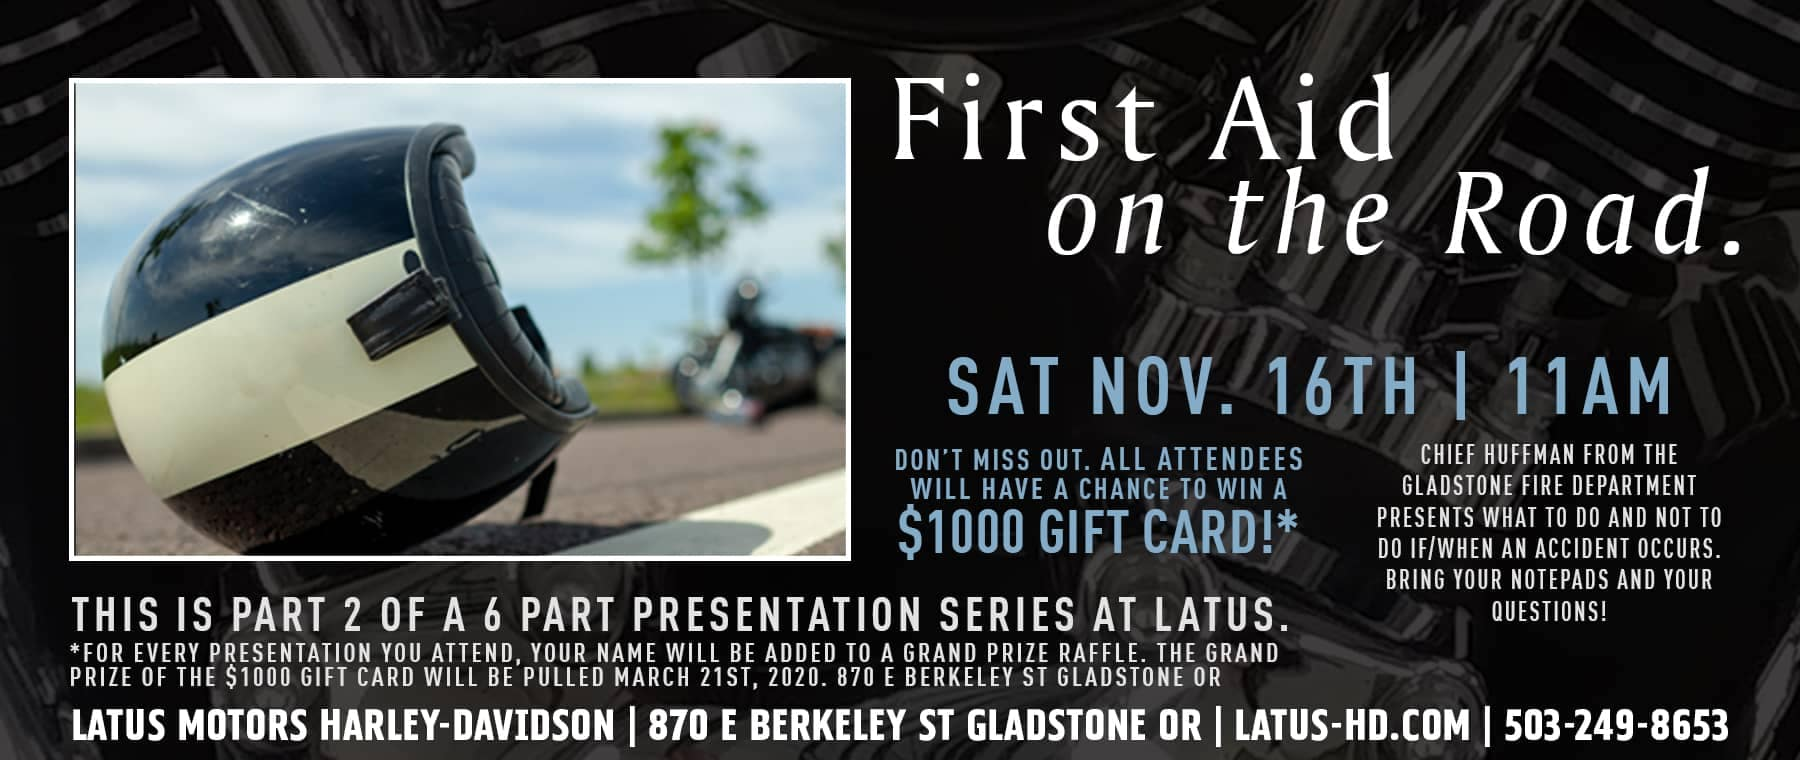 Latus Motors First Aid on the Road Presentation